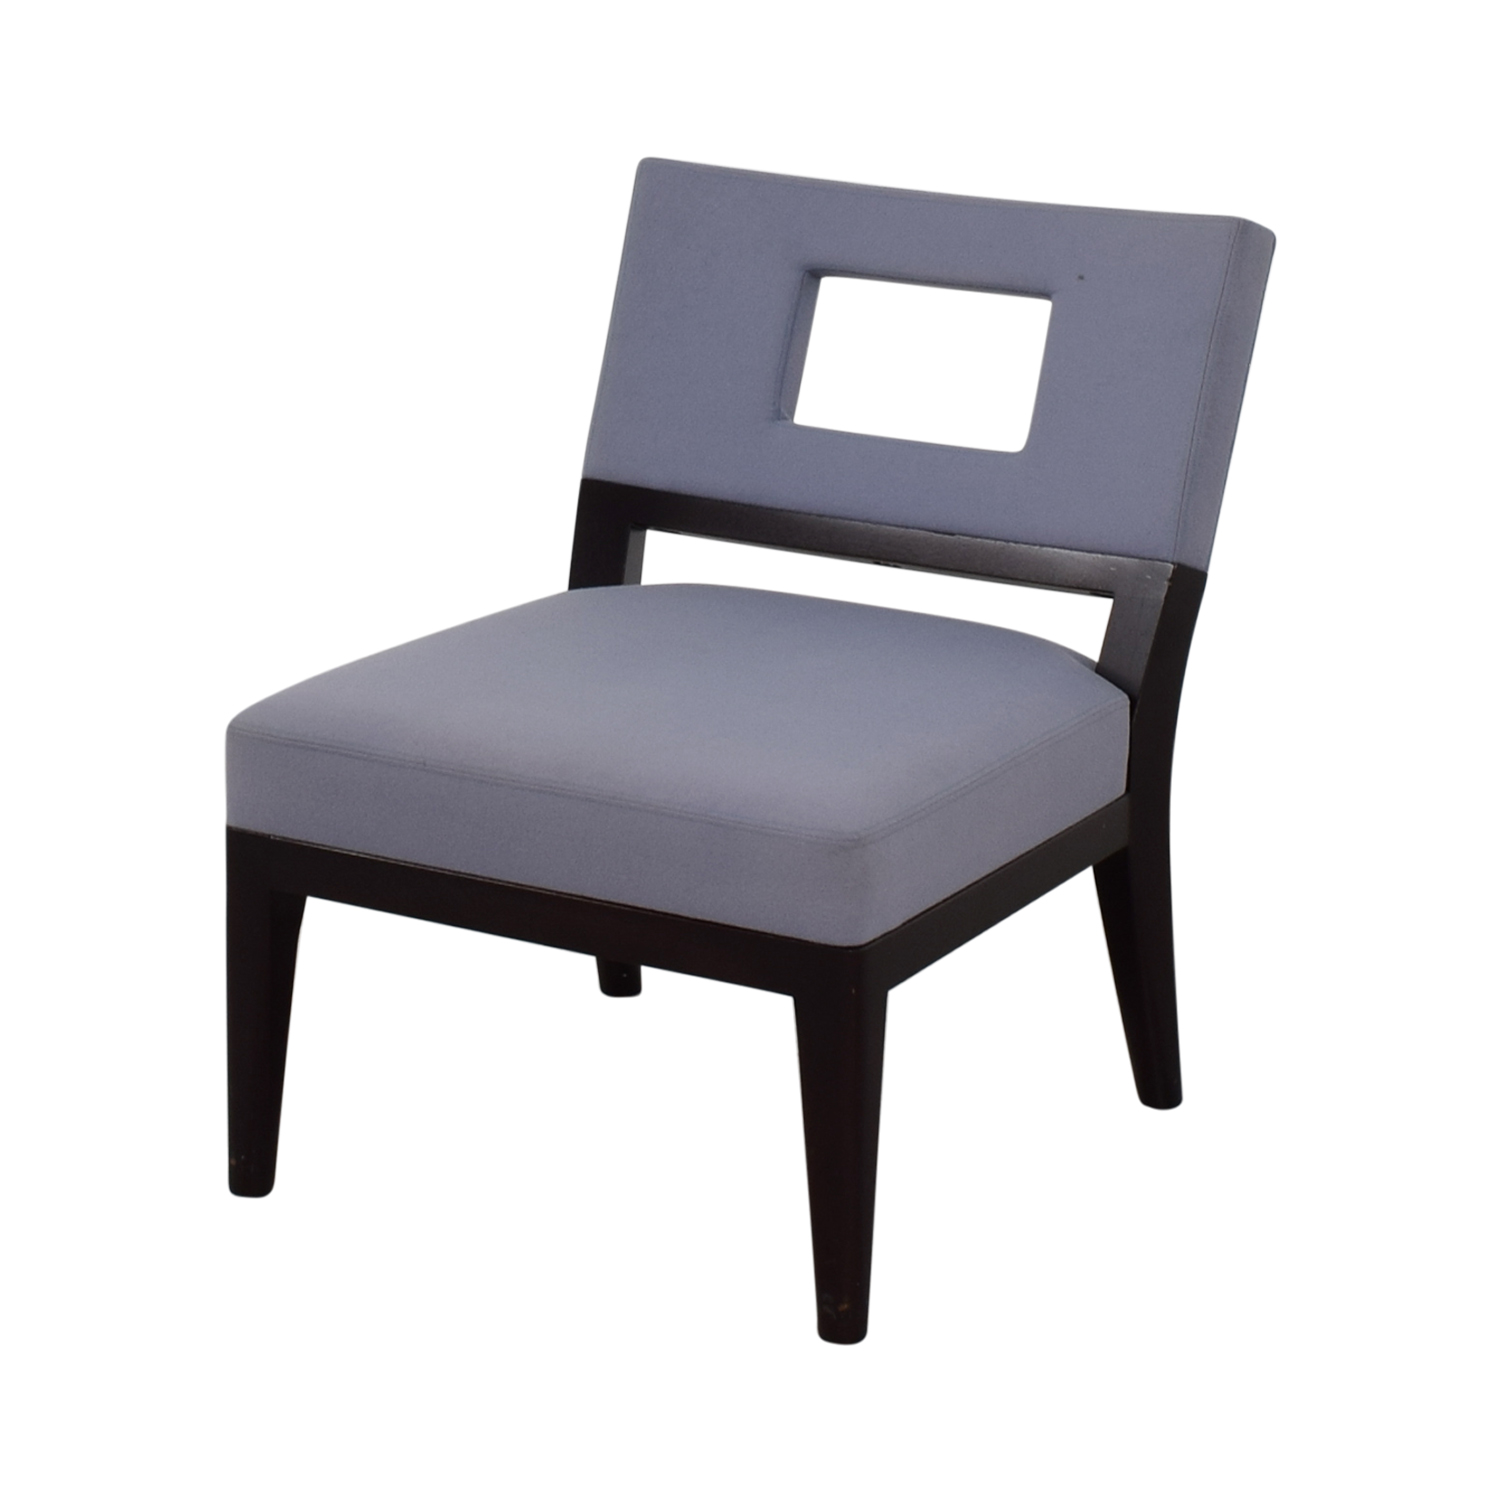 light blue desk chair patio chairs target 90 off christian liaigre